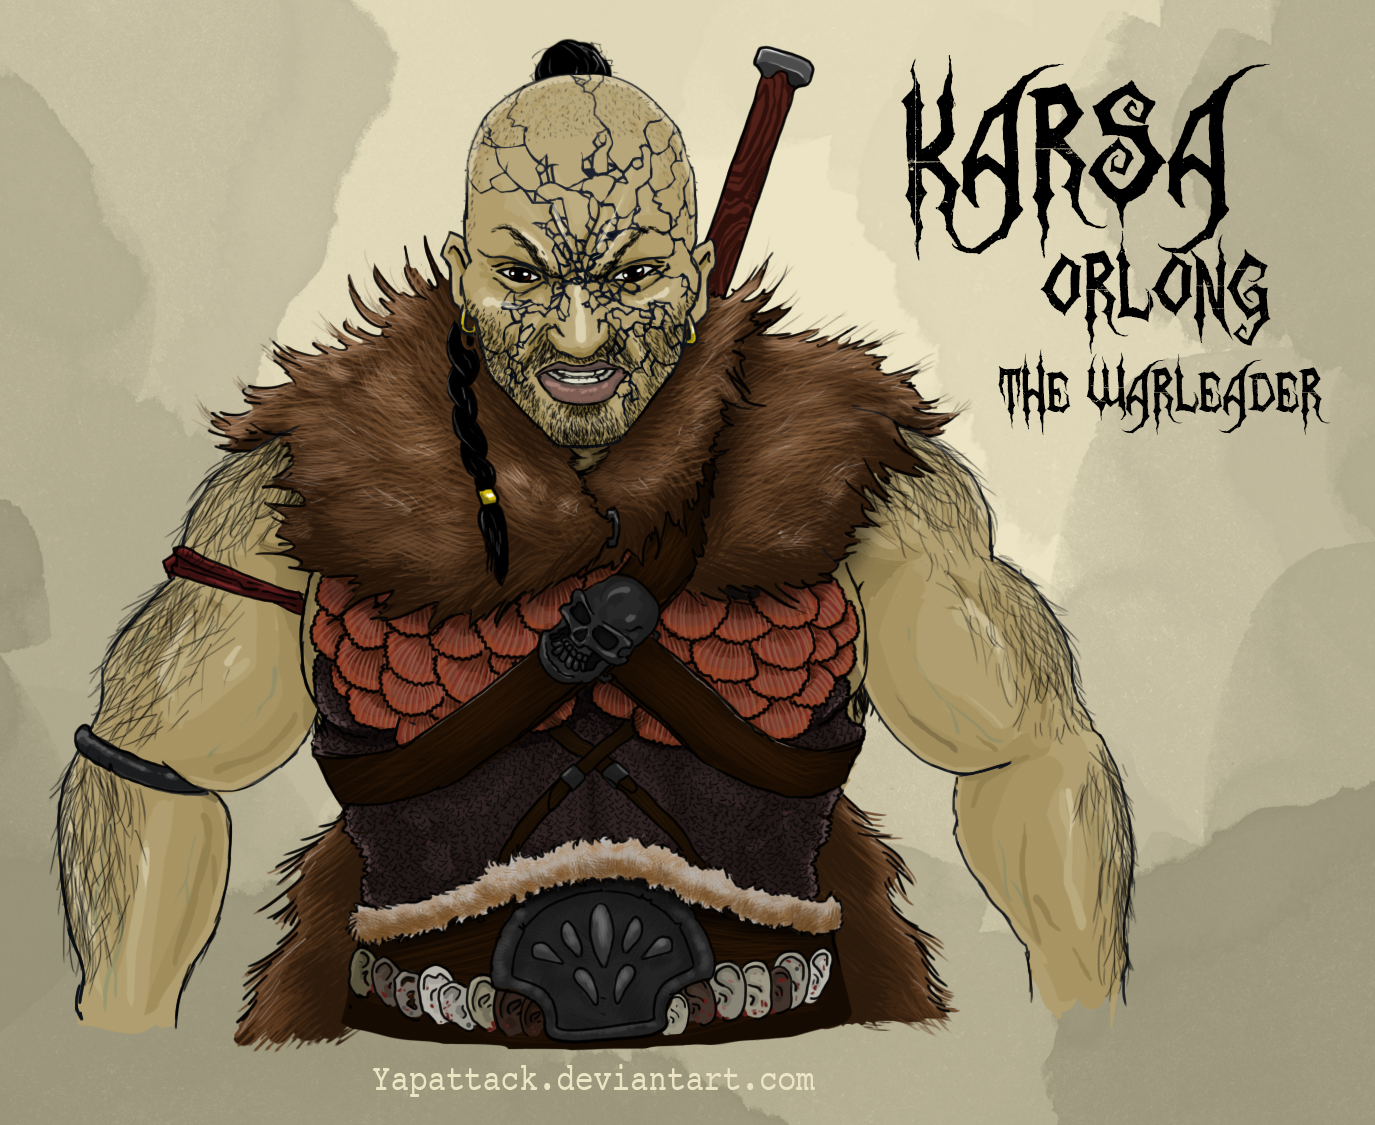 image karsa 2jpg malazan wiki fandom powered by wikia